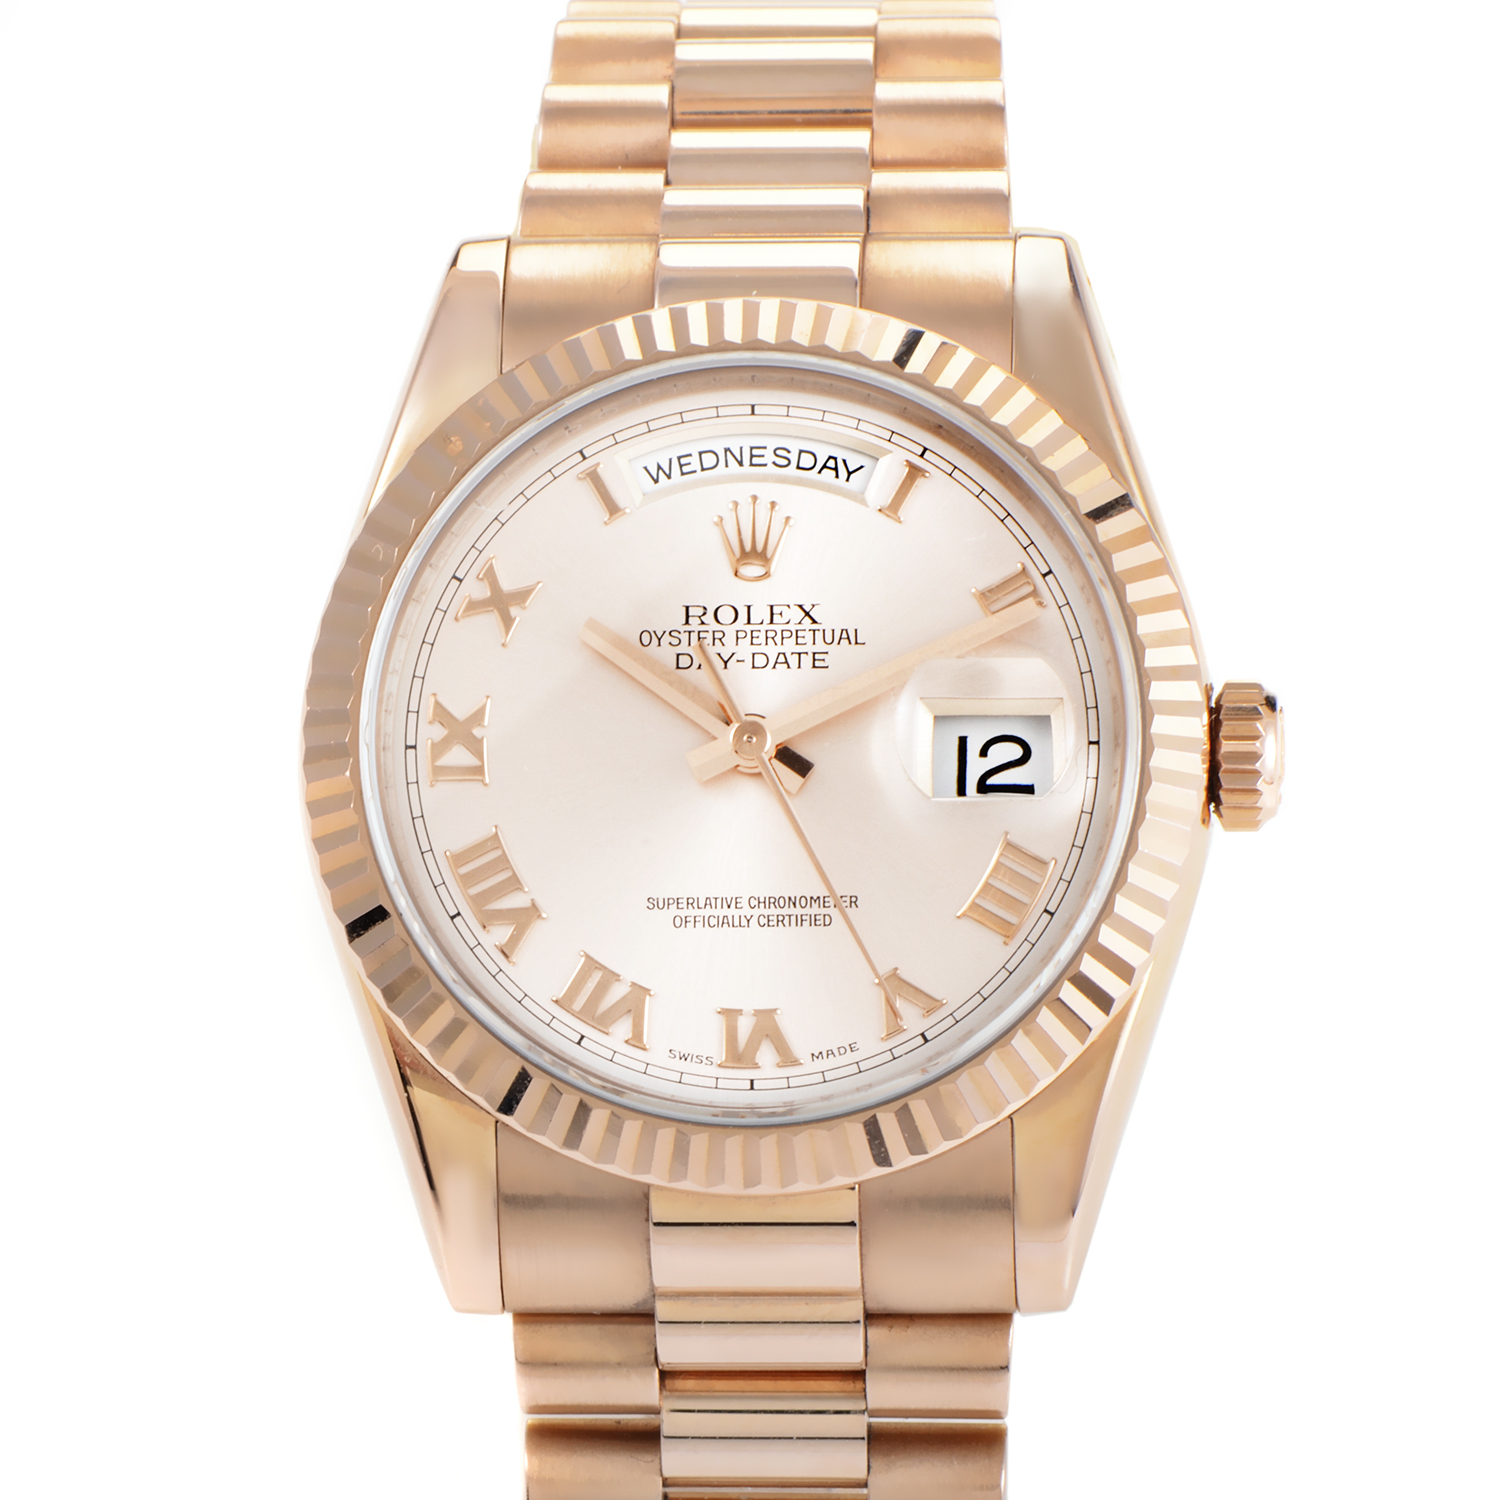 Oyster Perpetual Day-Date 118235 chrp